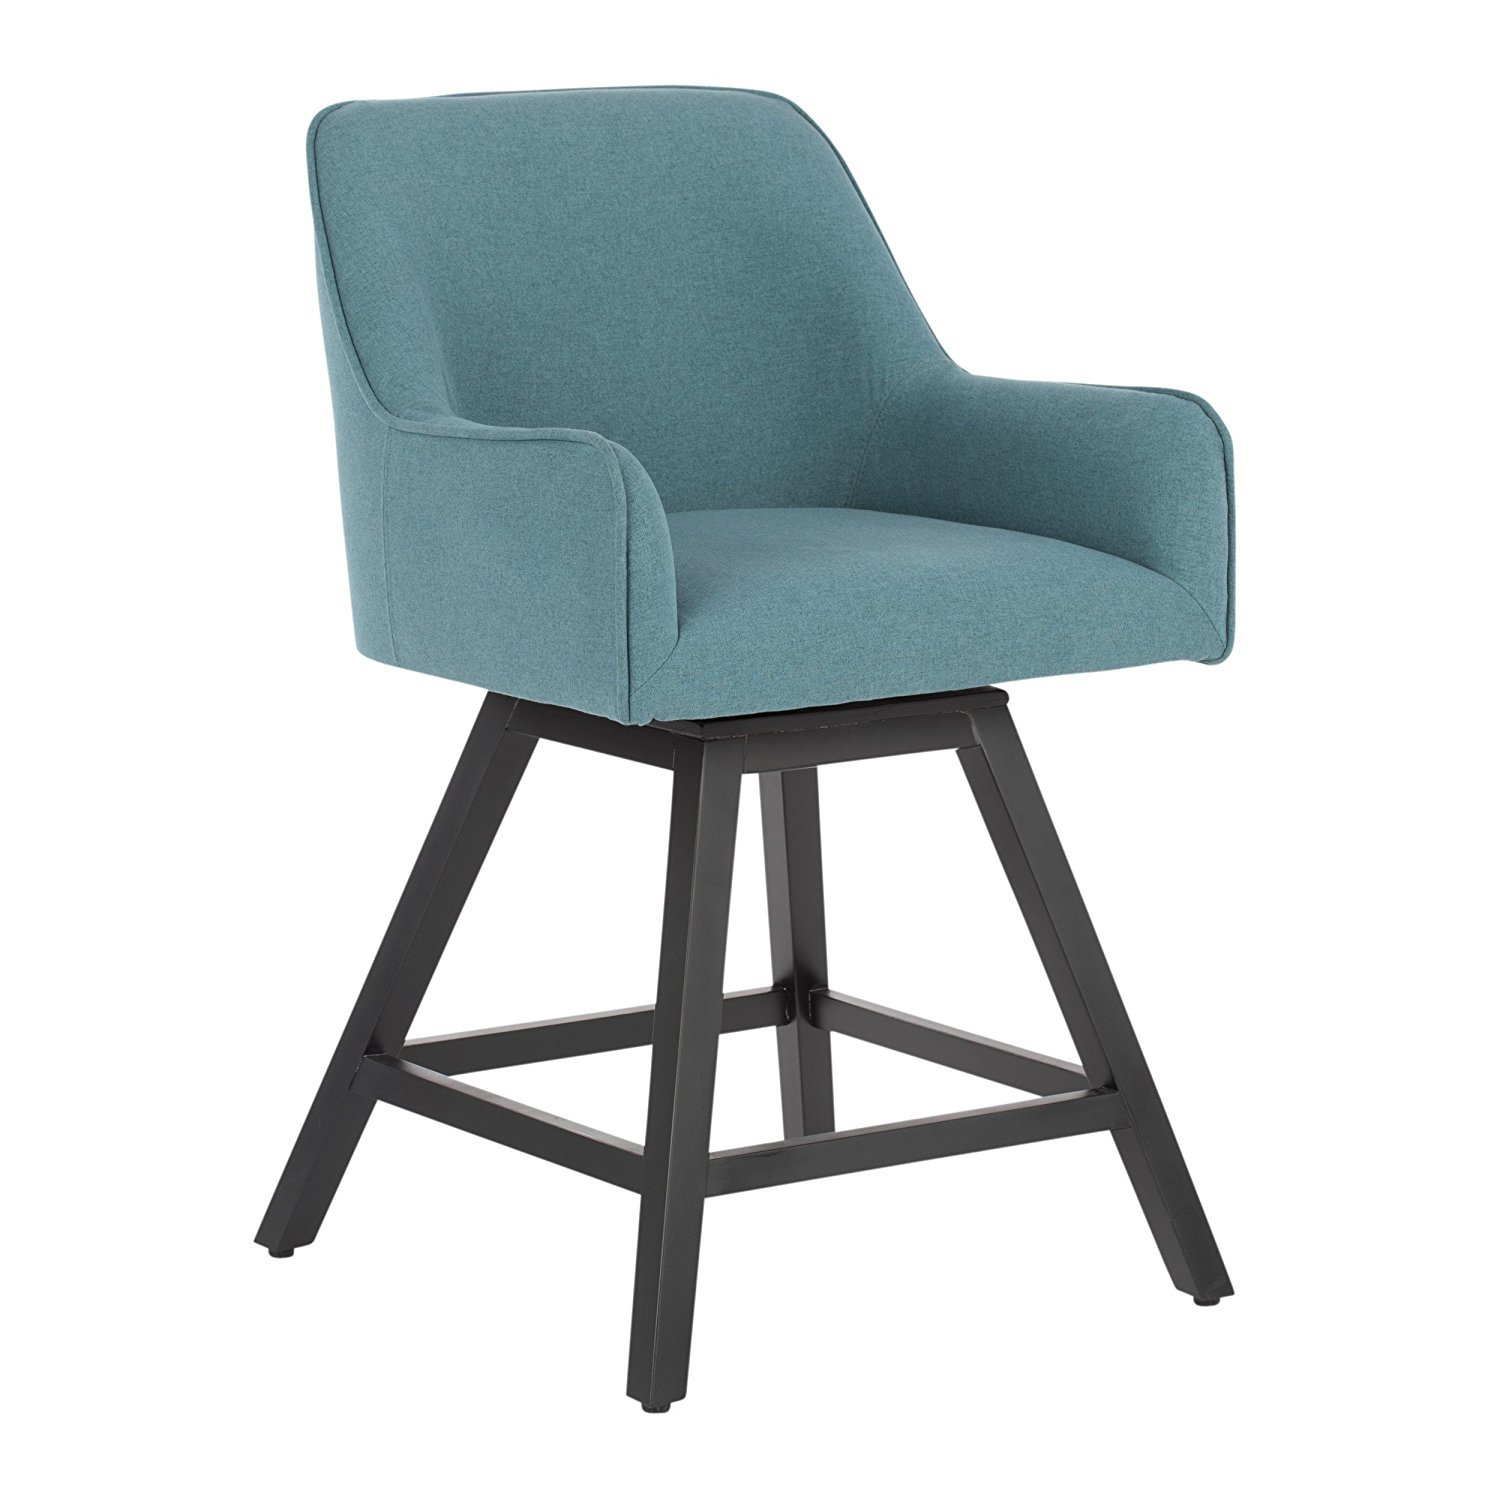 Studio Designs Home 70152 Contemporary Spire Swivel Upholstered Counter Stool, Baltic by Studio Designs Home